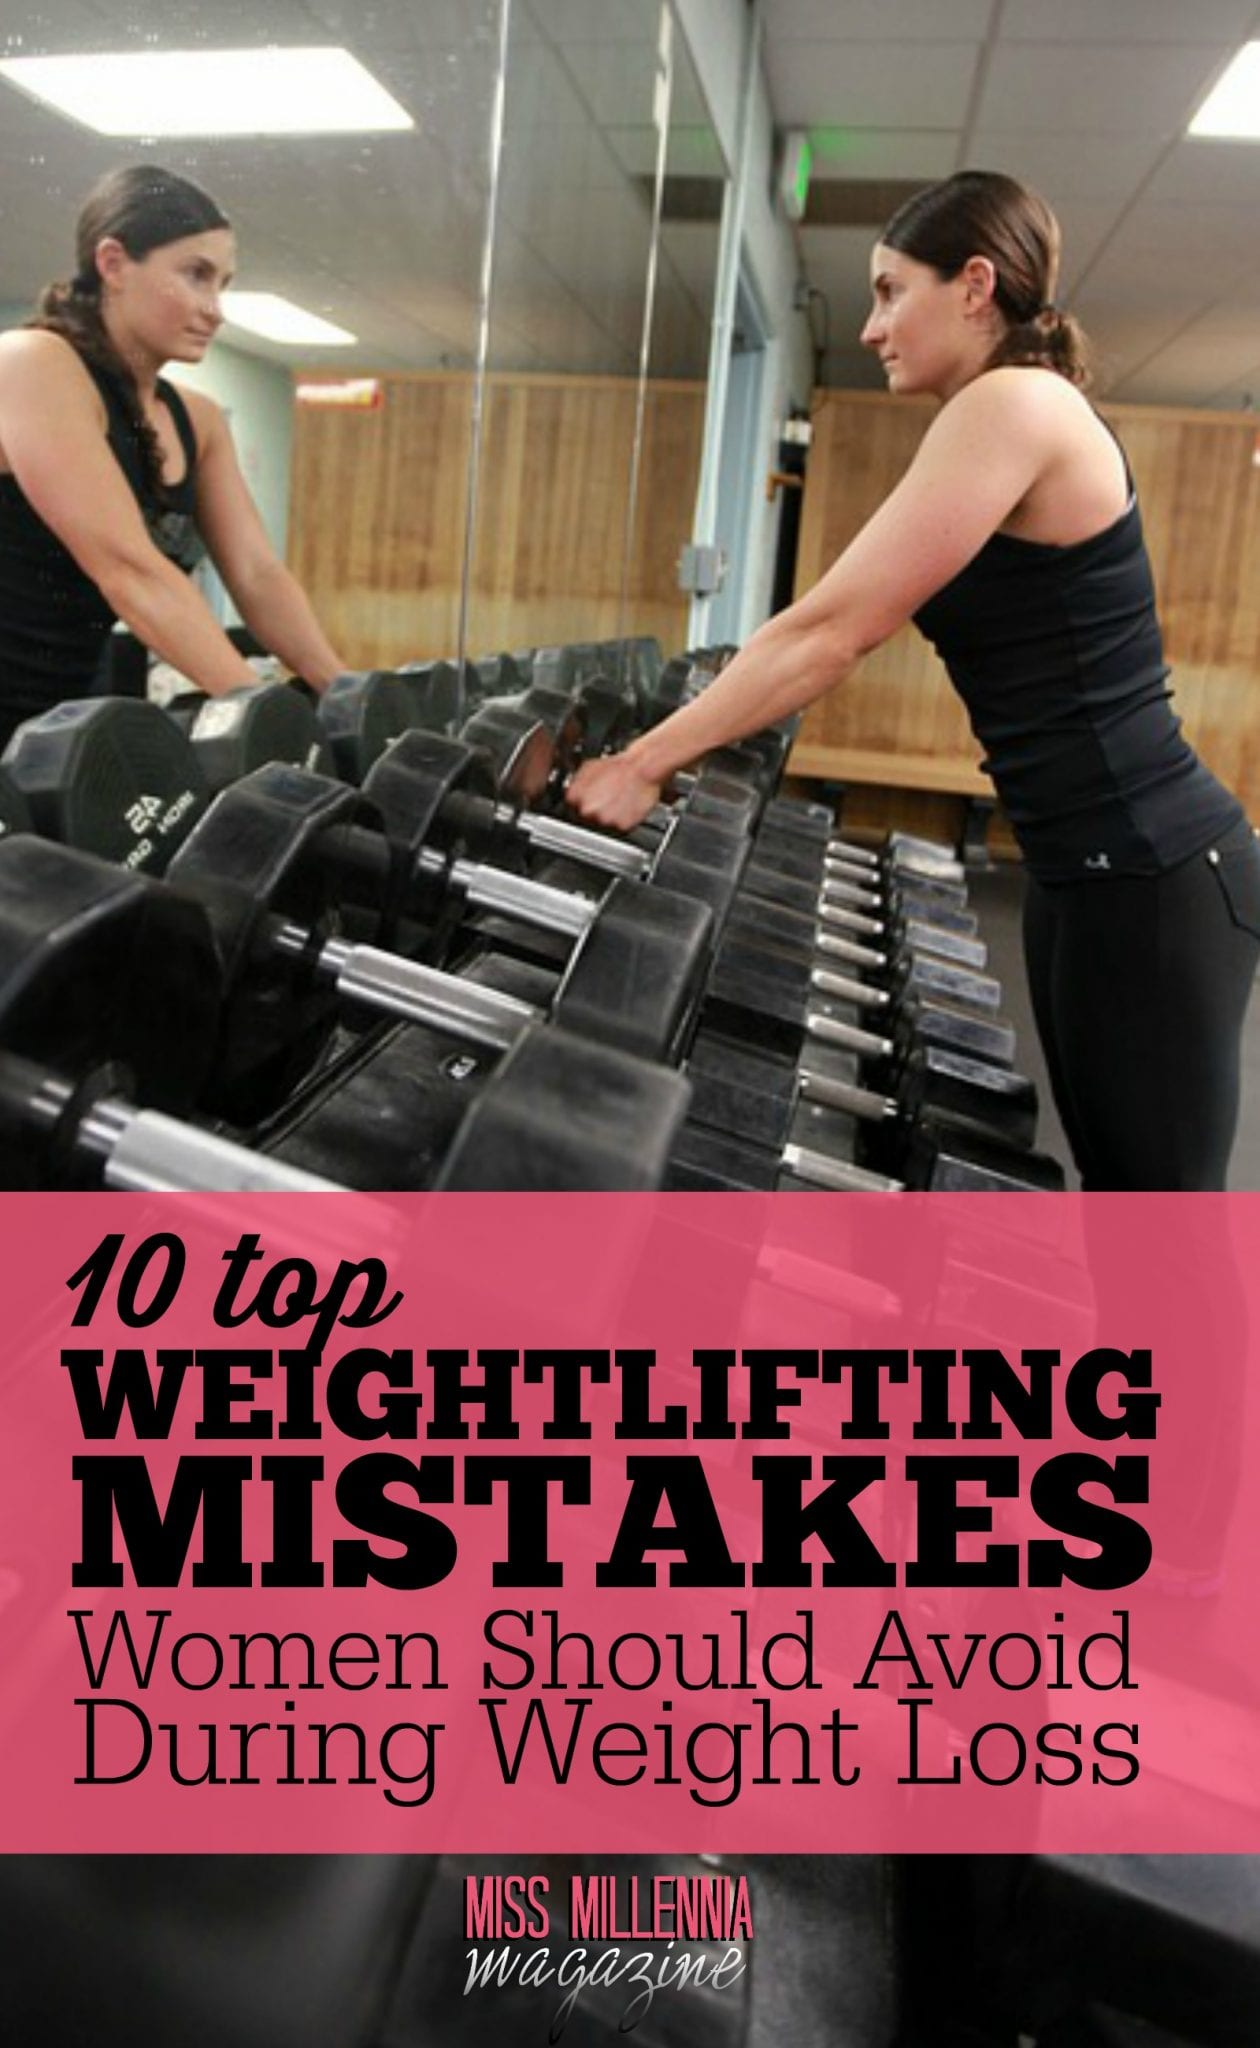 It's paramount for everyone to note that there are weightlifting mistakes before you rush off to the gym and potentially make a few of them.